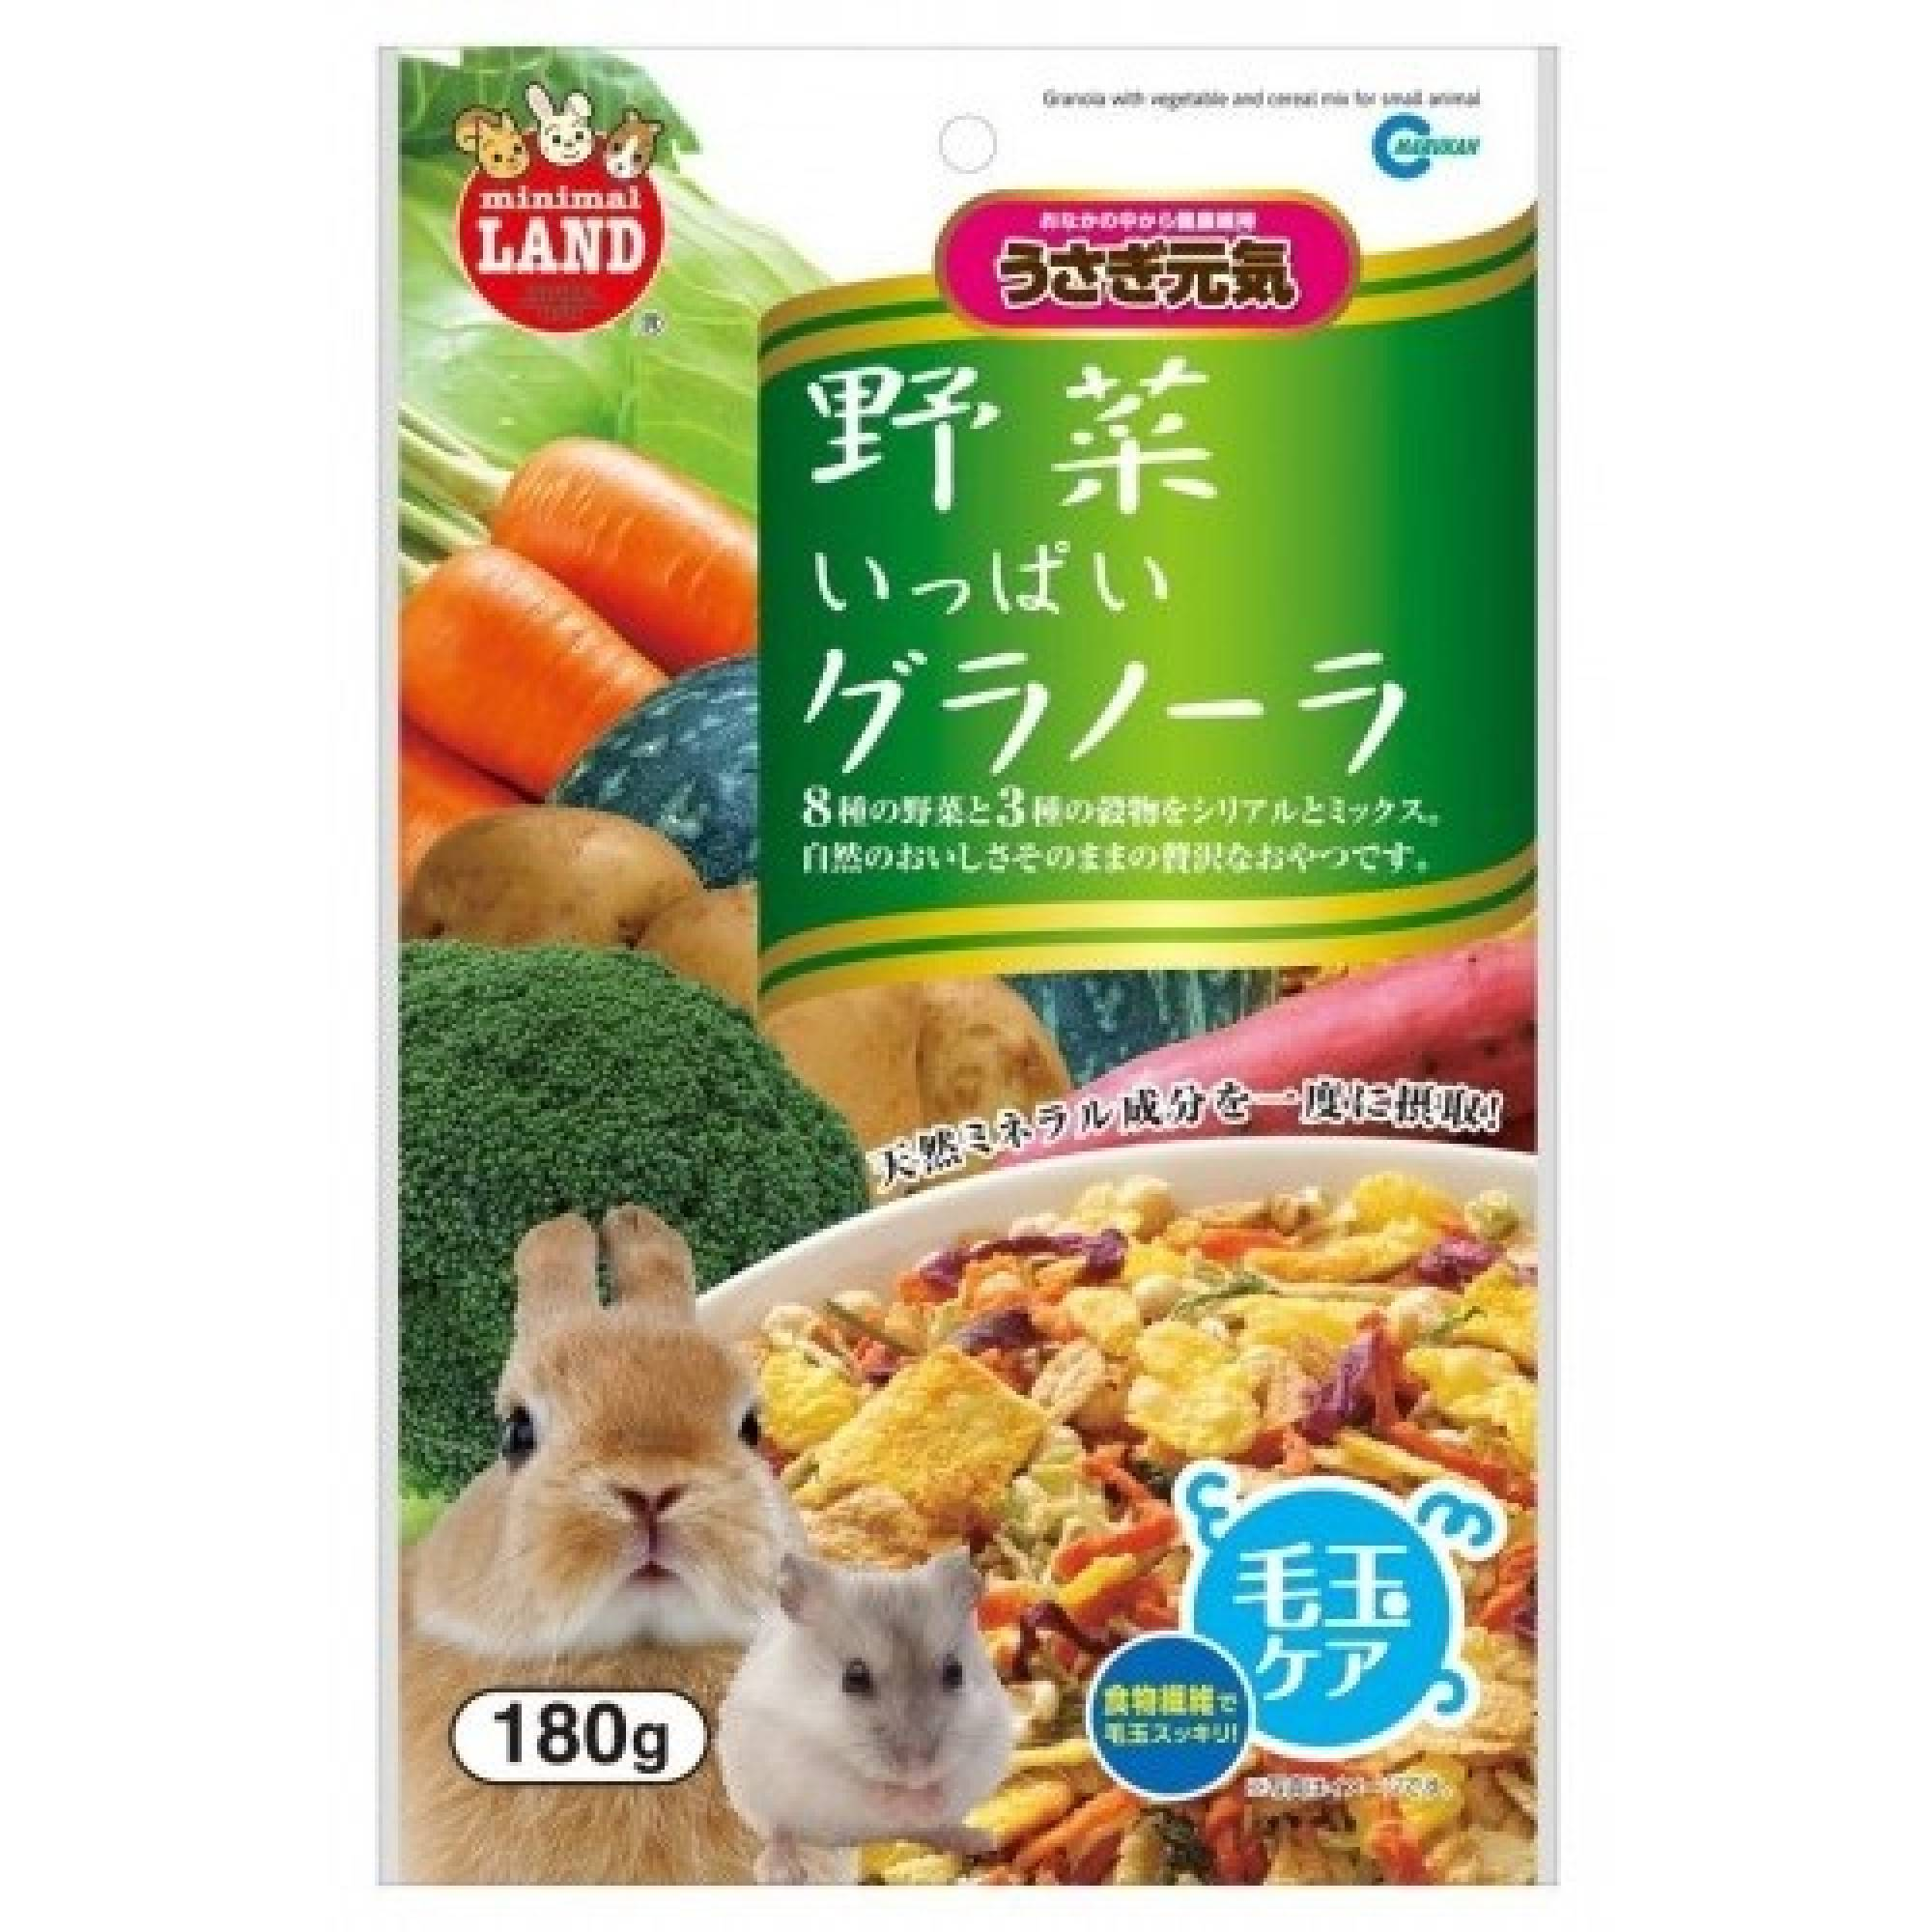 Marukan ML06 - Granola with Vegetable and Cereal Mix 180g